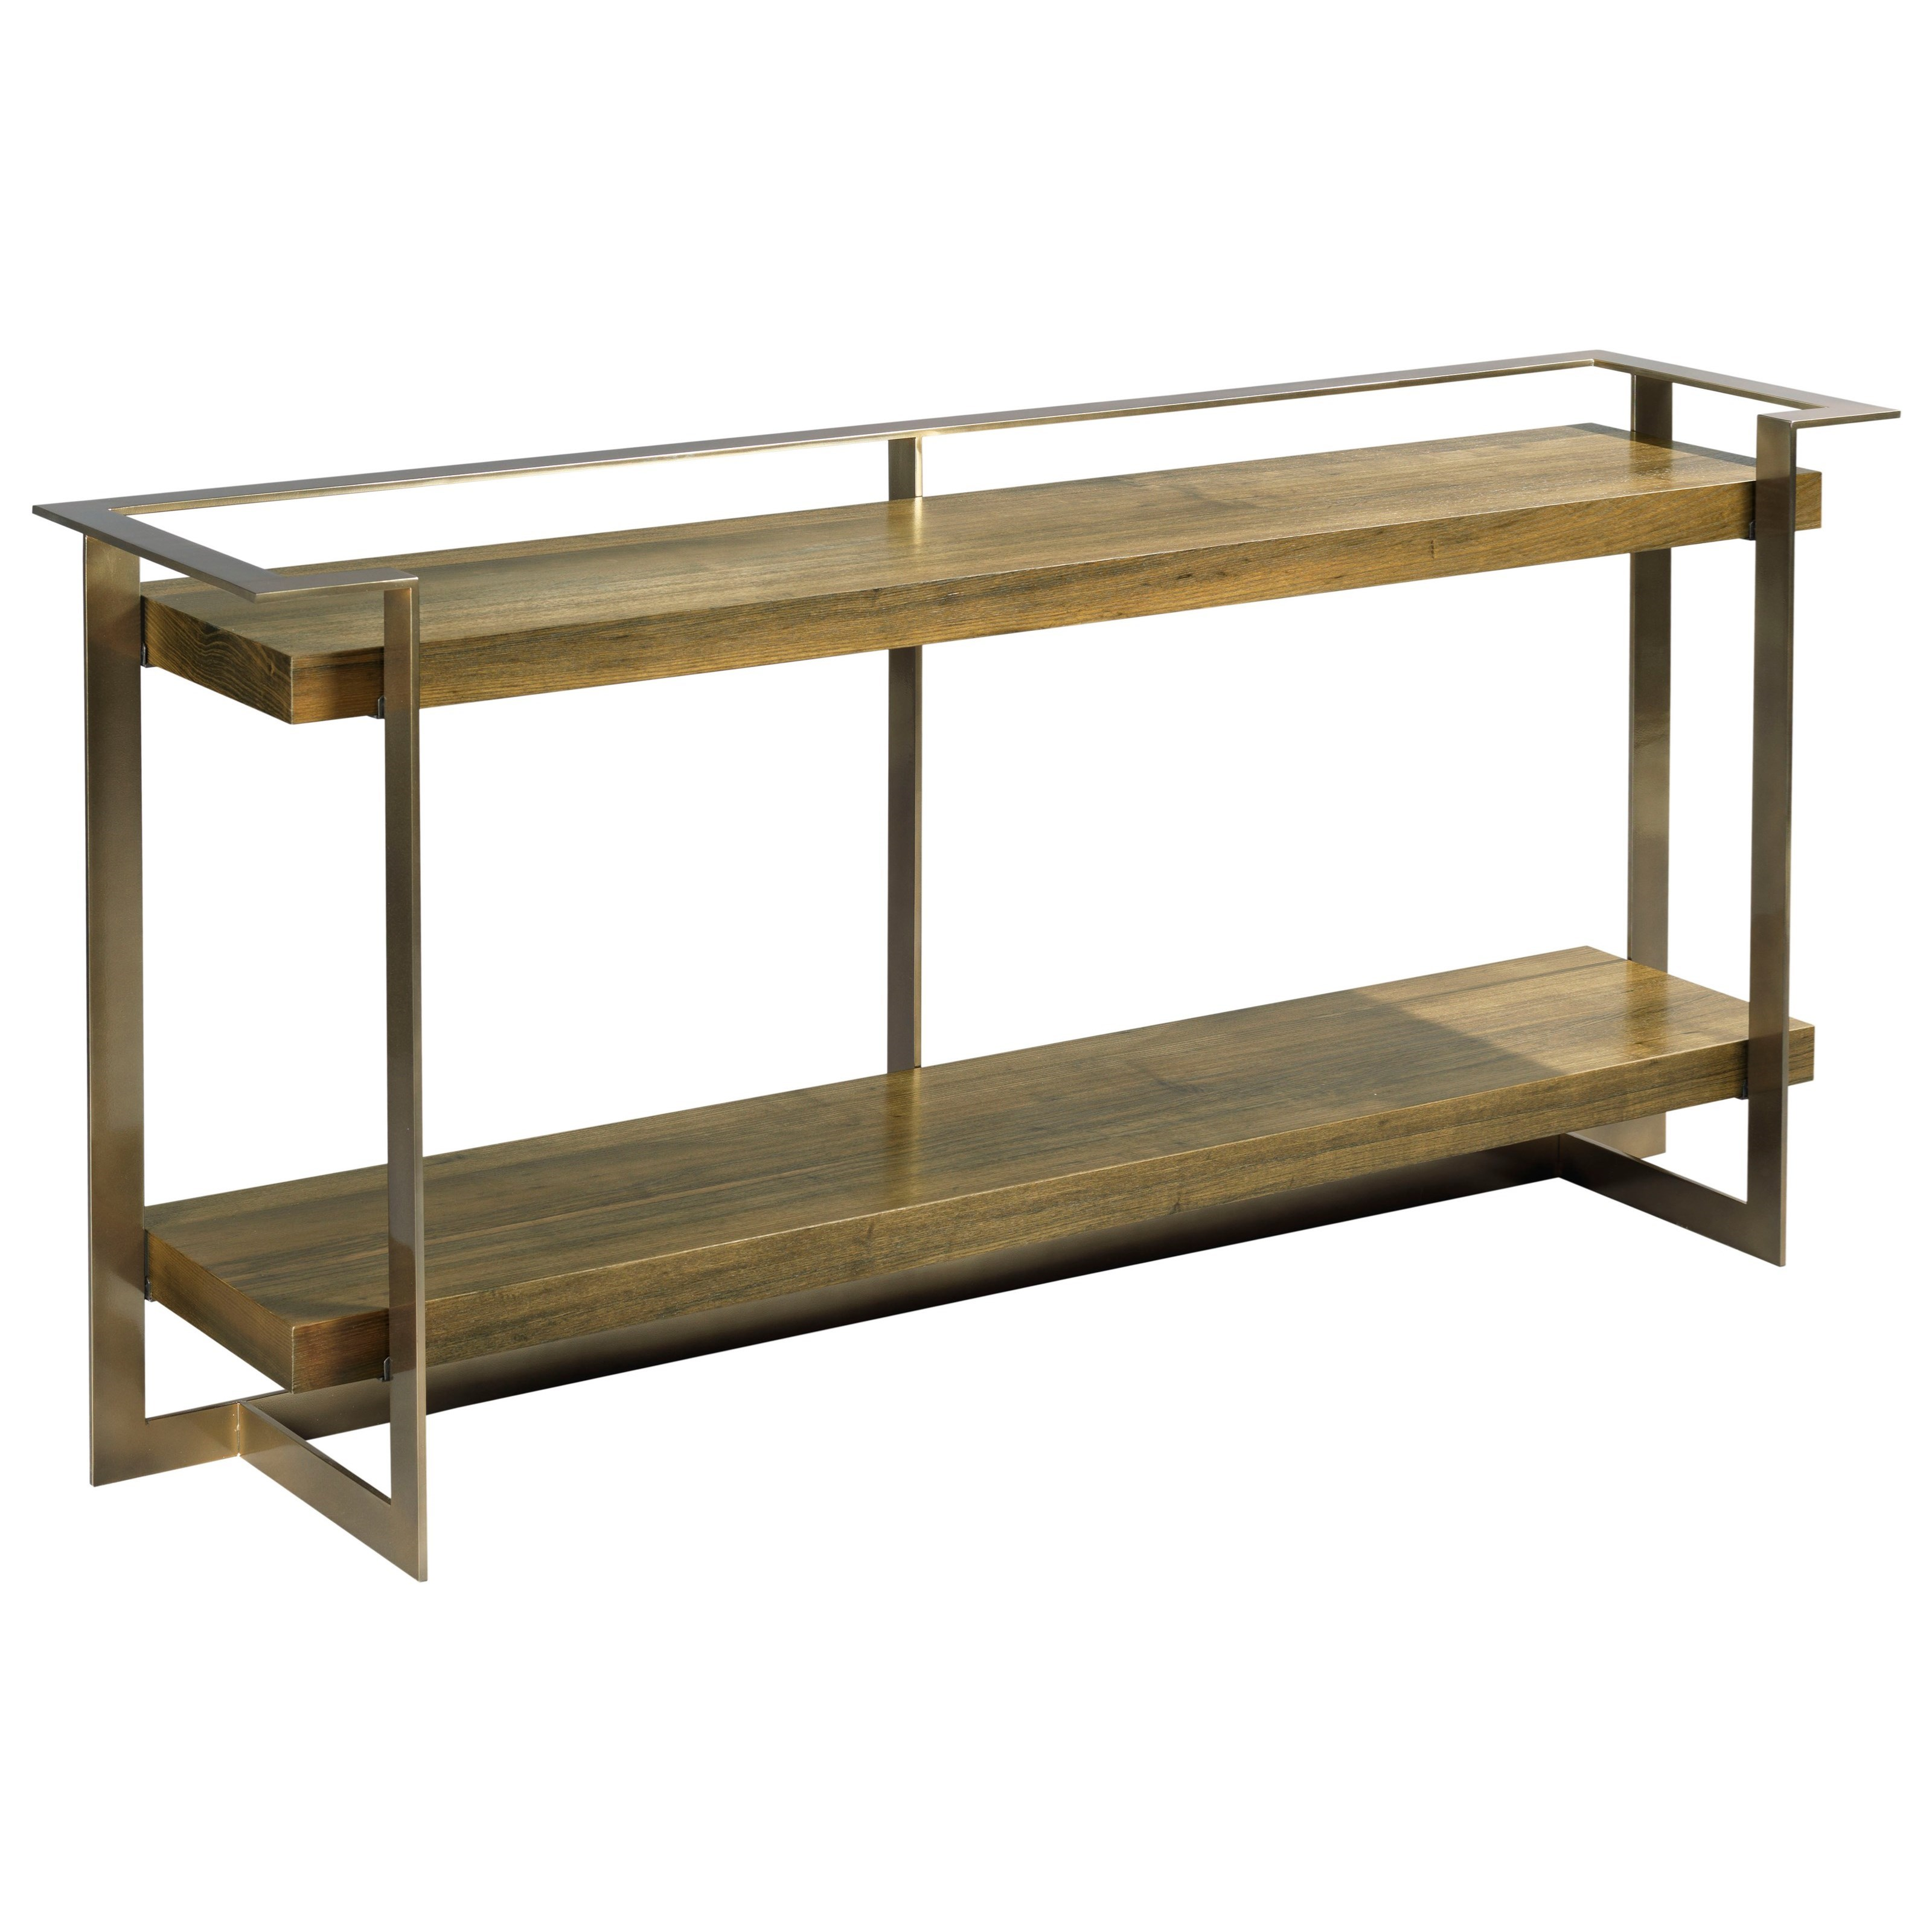 American Drew Ad Modern Organics Timothy Console Table - Item Number: 600-926